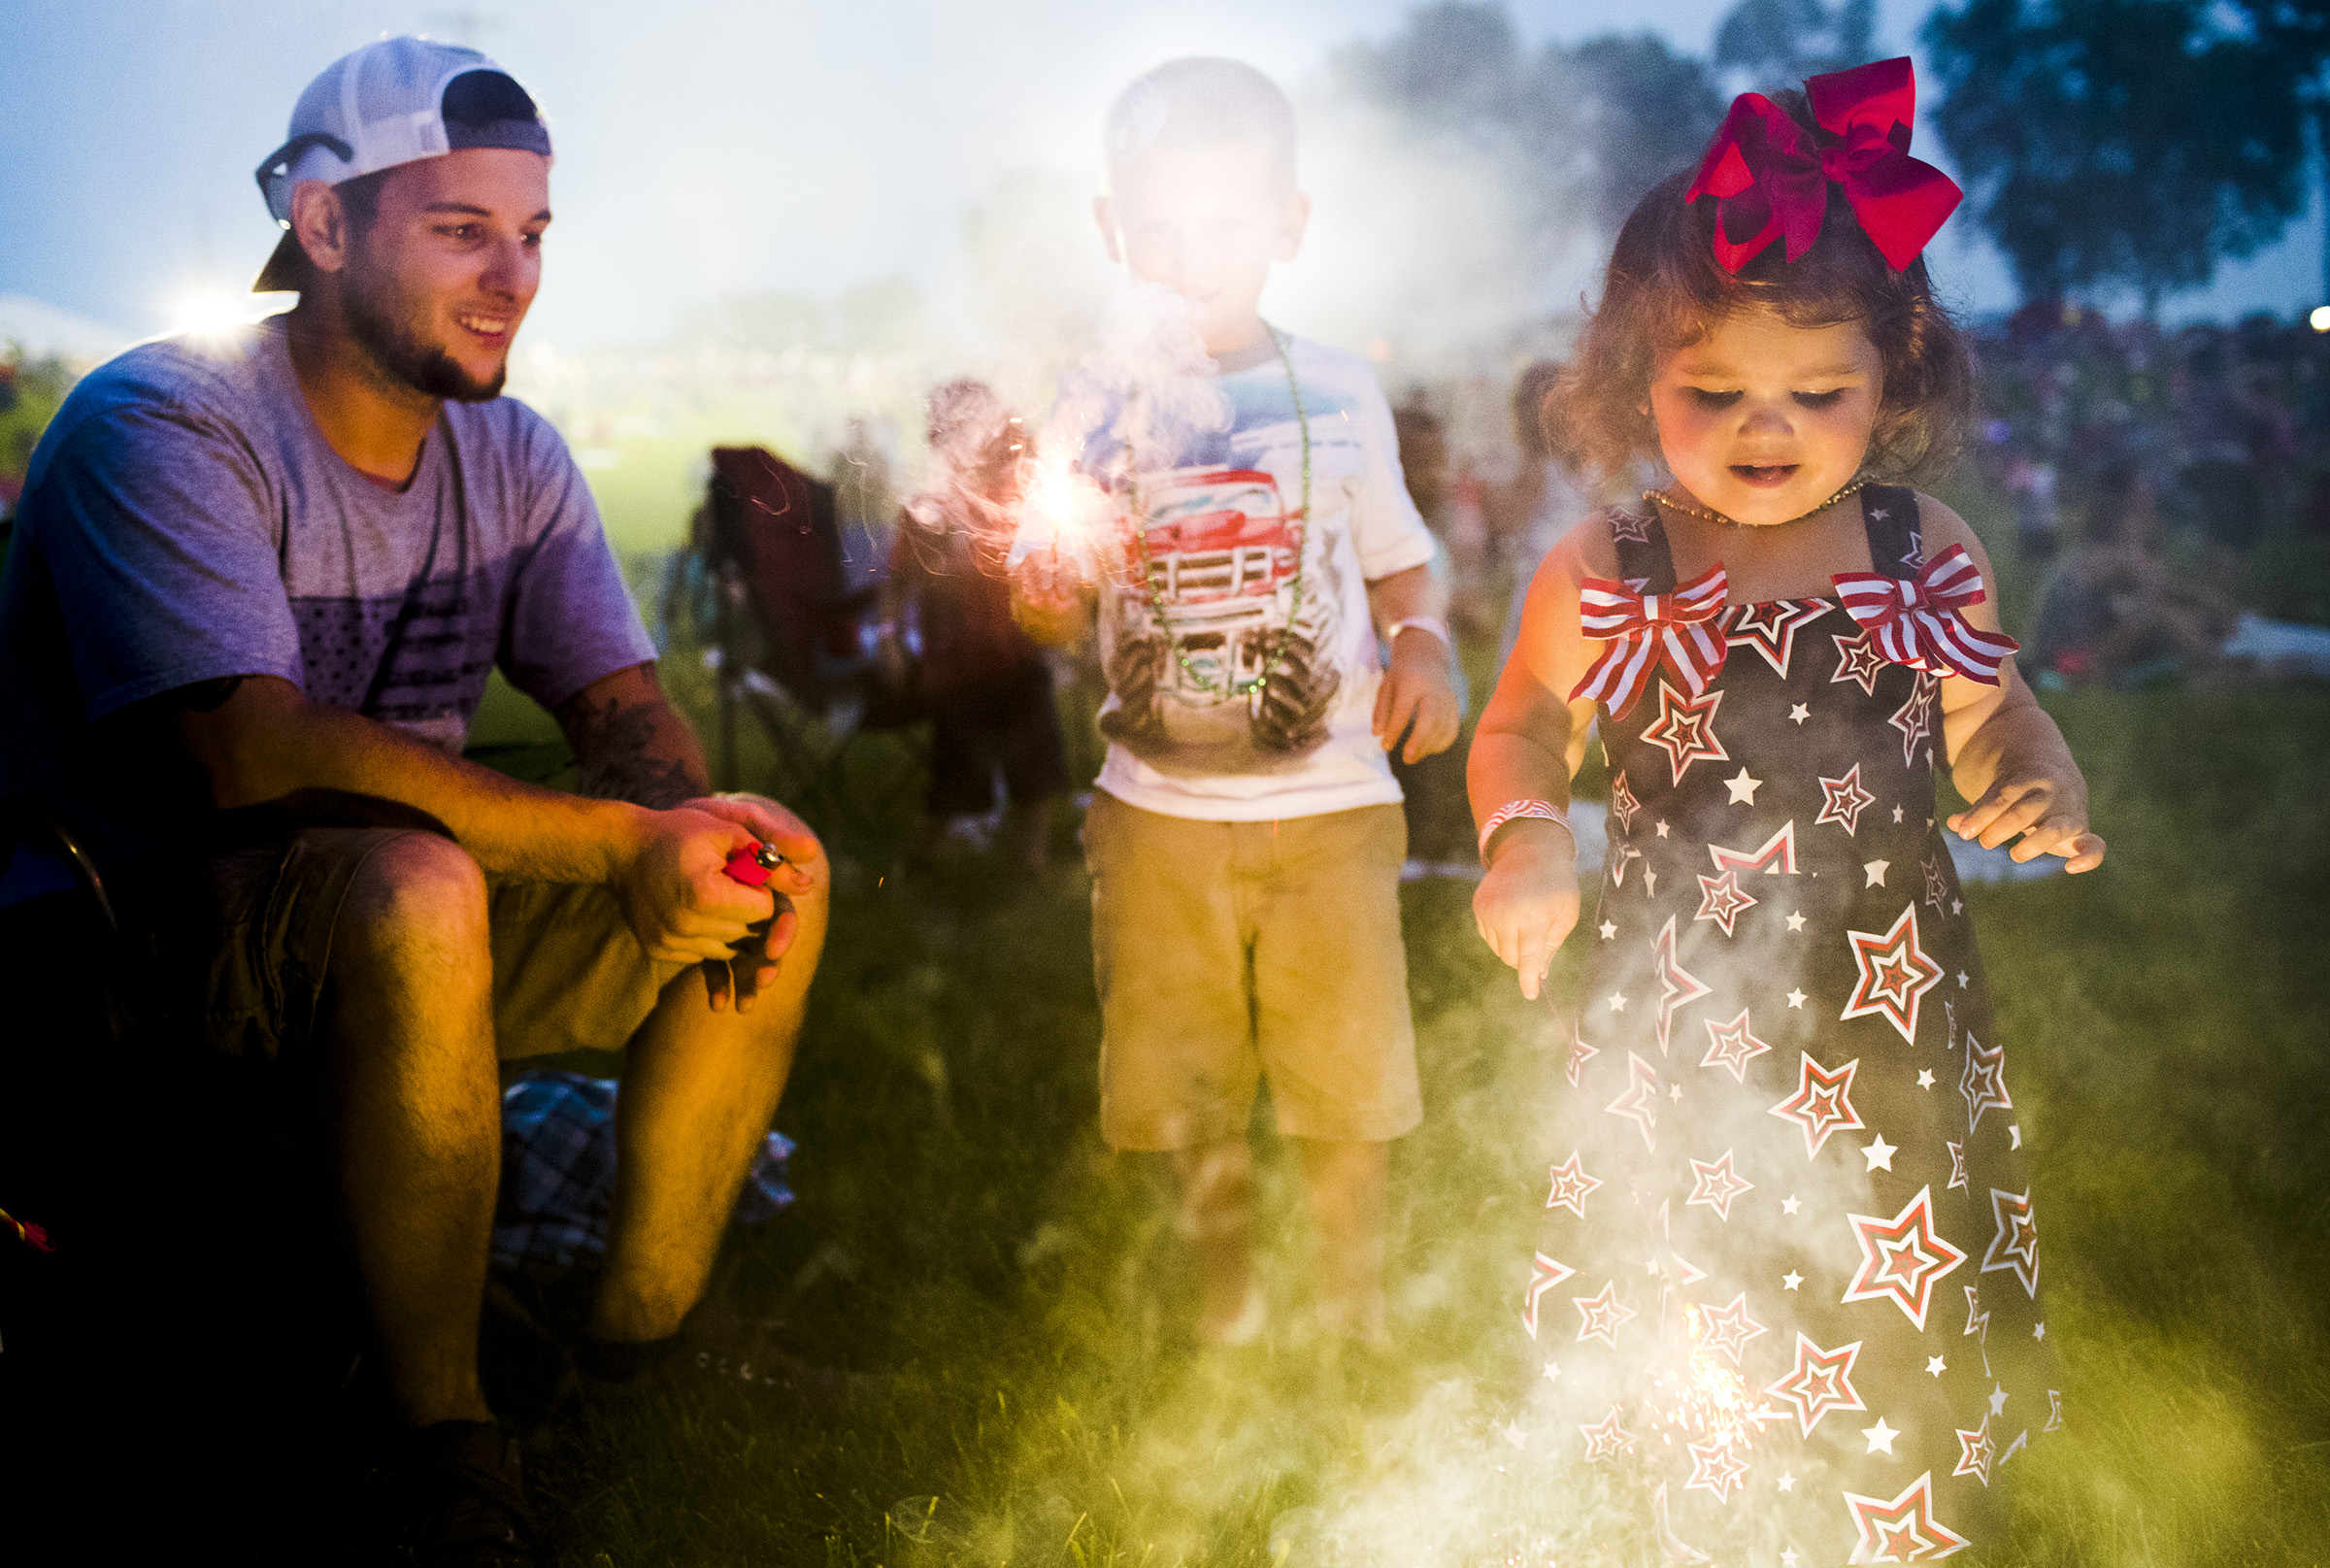 From right, Ashlynn Zinman, 2, plays with sparklers with her brother, Carson Zinman, 5, and father Anthony Zinman, all of Glasgow, Ky., during Thunderfest on Sunday, July 2, 2017, at the National Corvette Museum in Bowling Green, Ky.